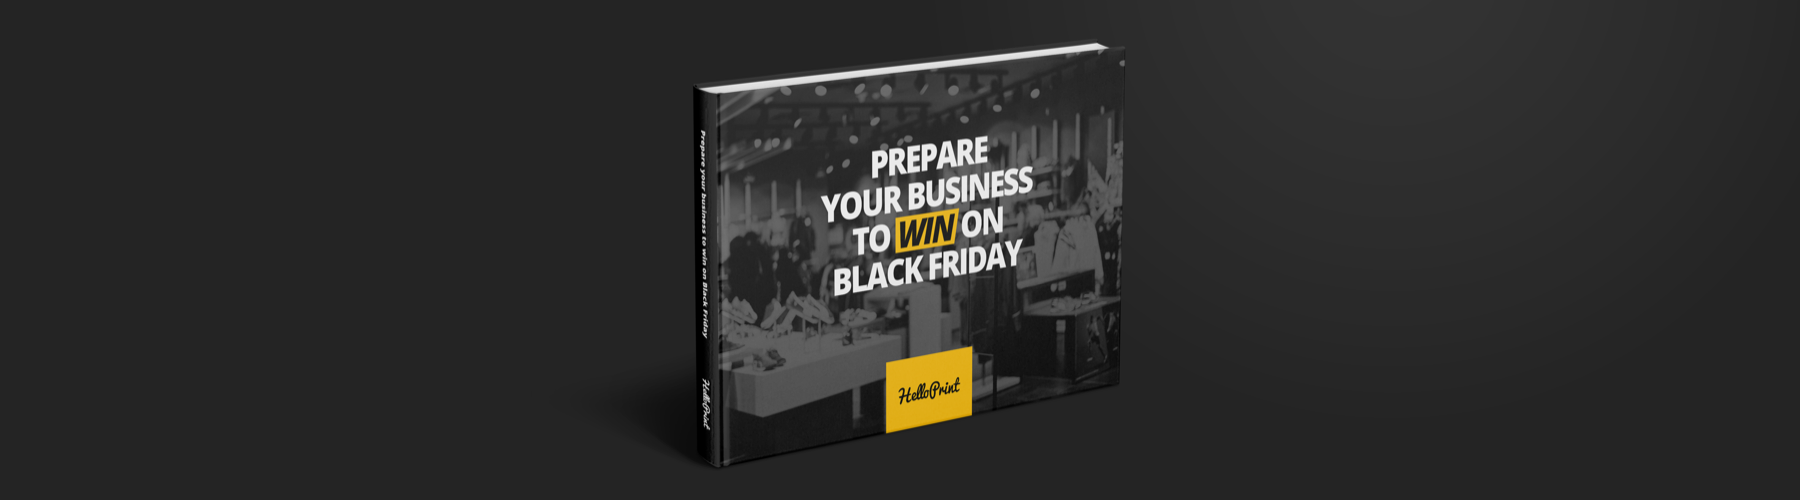 Free Whitepaper: Prepare your business to win on Black Friday